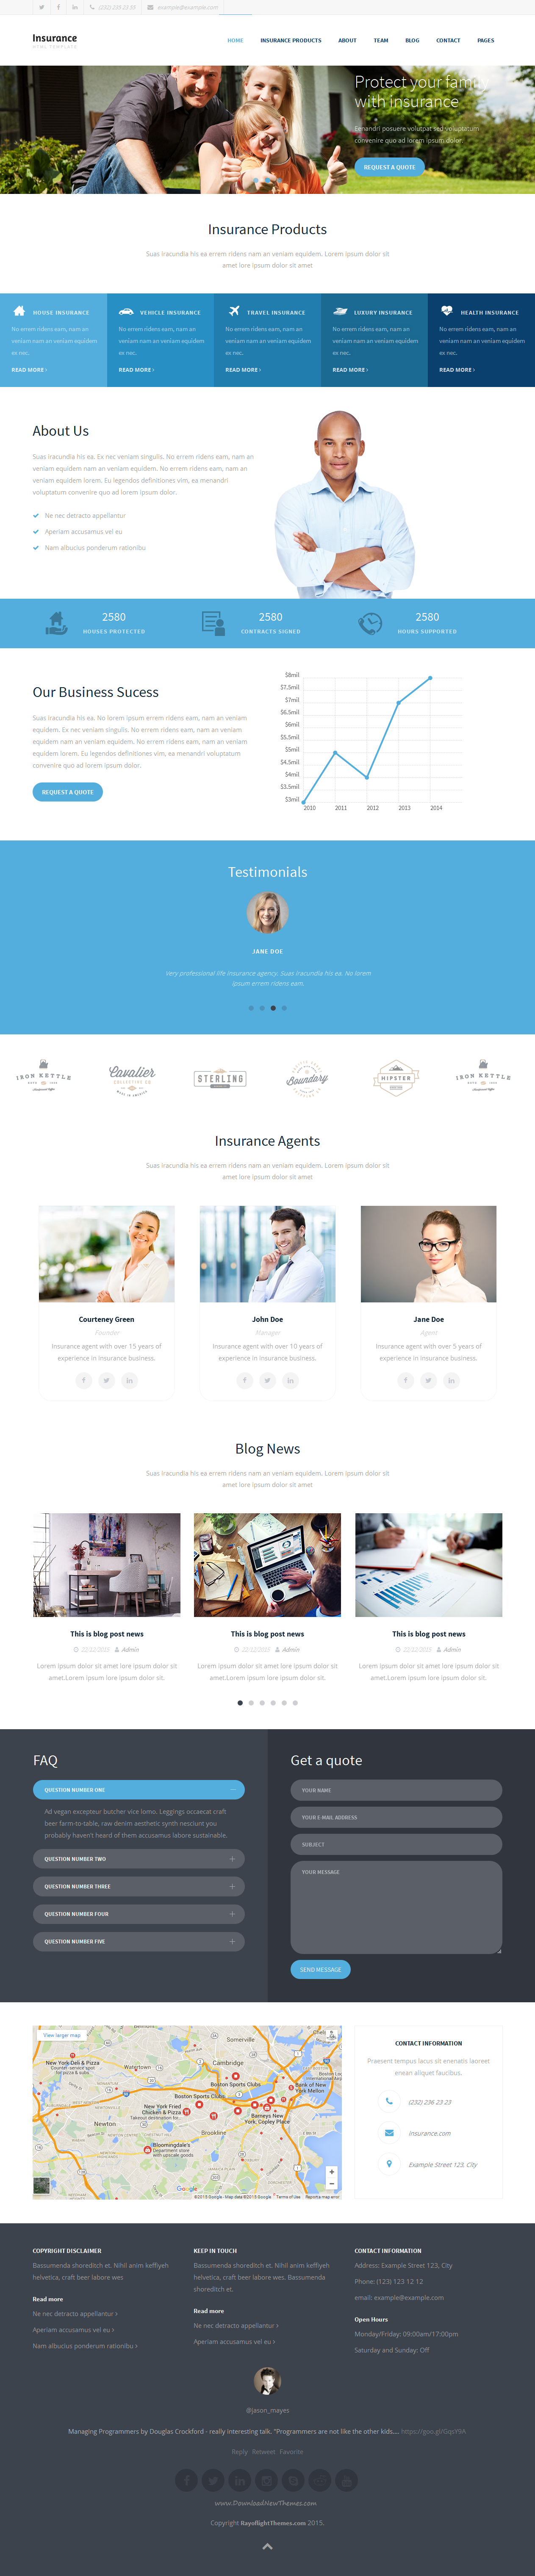 For today's post, we are showcasing 26 Best Insurance Websites for ...